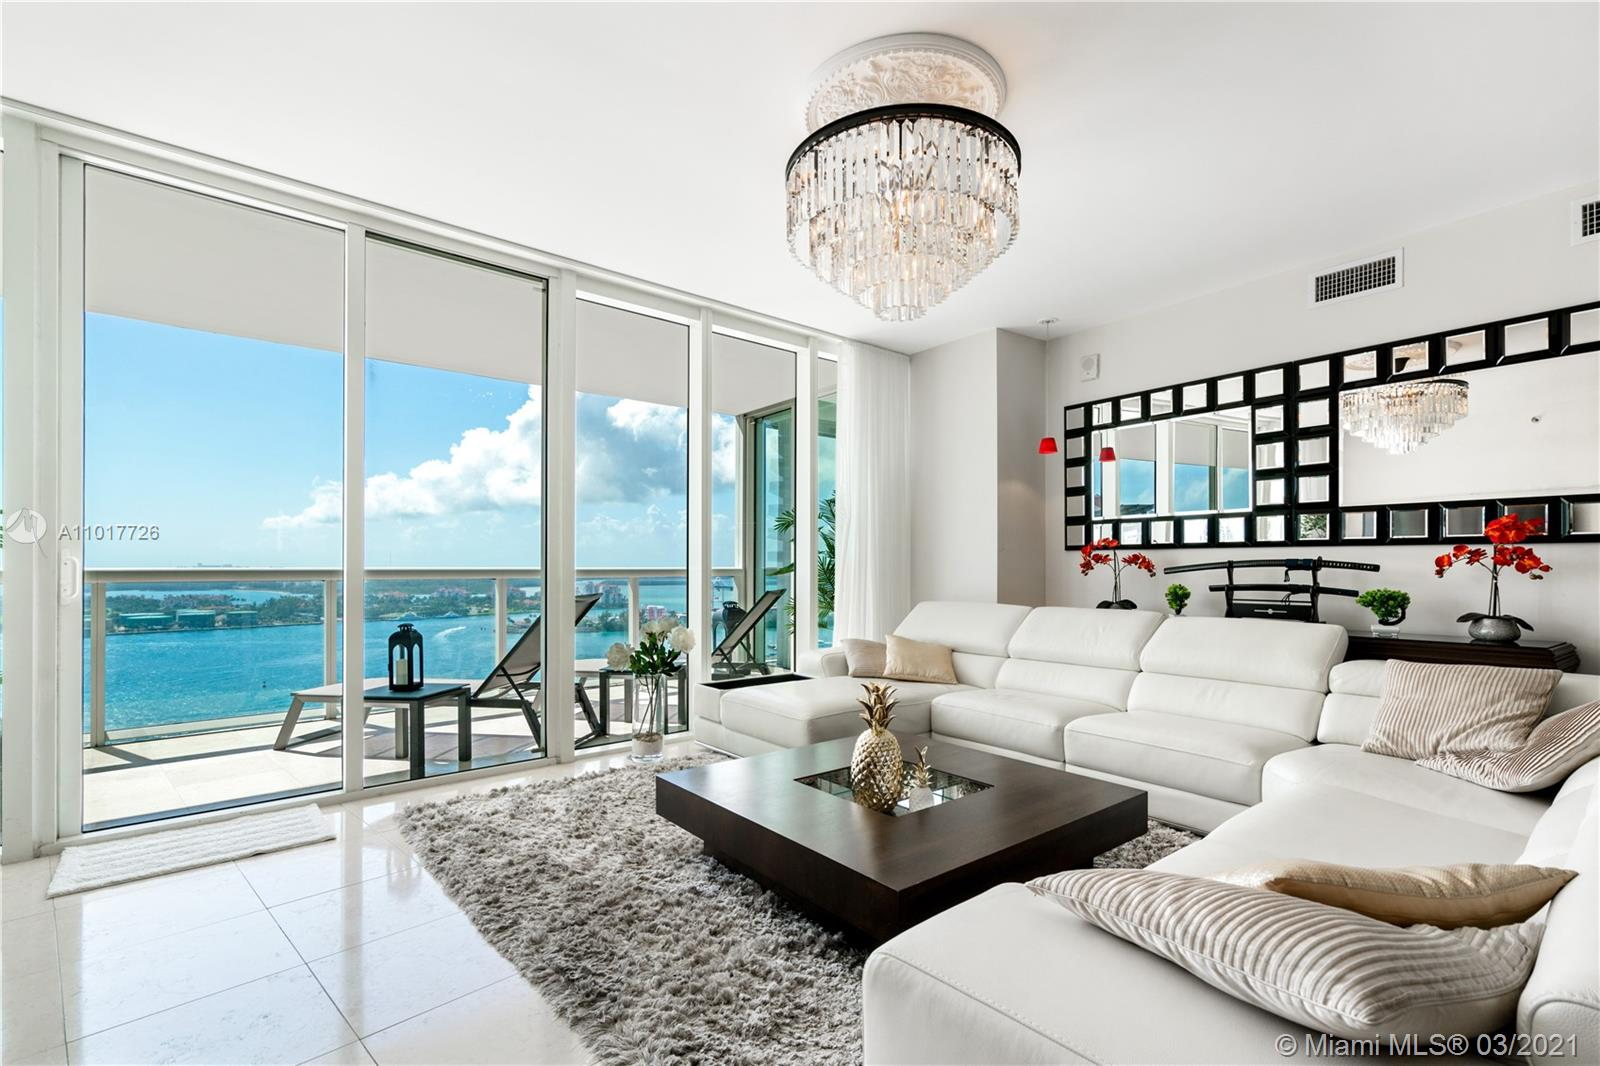 Situated on the 26th floor of ICON South Beach, this 2158 sf apartment will awe. Large balcony gives stunning unobstructed skyline, bay and ocean views. Philippe Starck Package, Beautiful, limestone and wood flooring, Delacassa cabinets, Miele & Subzero appliances, Duravit fixtures, custom closets, Jacuzzi spa tub and more. Conveniently located within walking distance to the marina, markets, award winning restaurants and the beach.